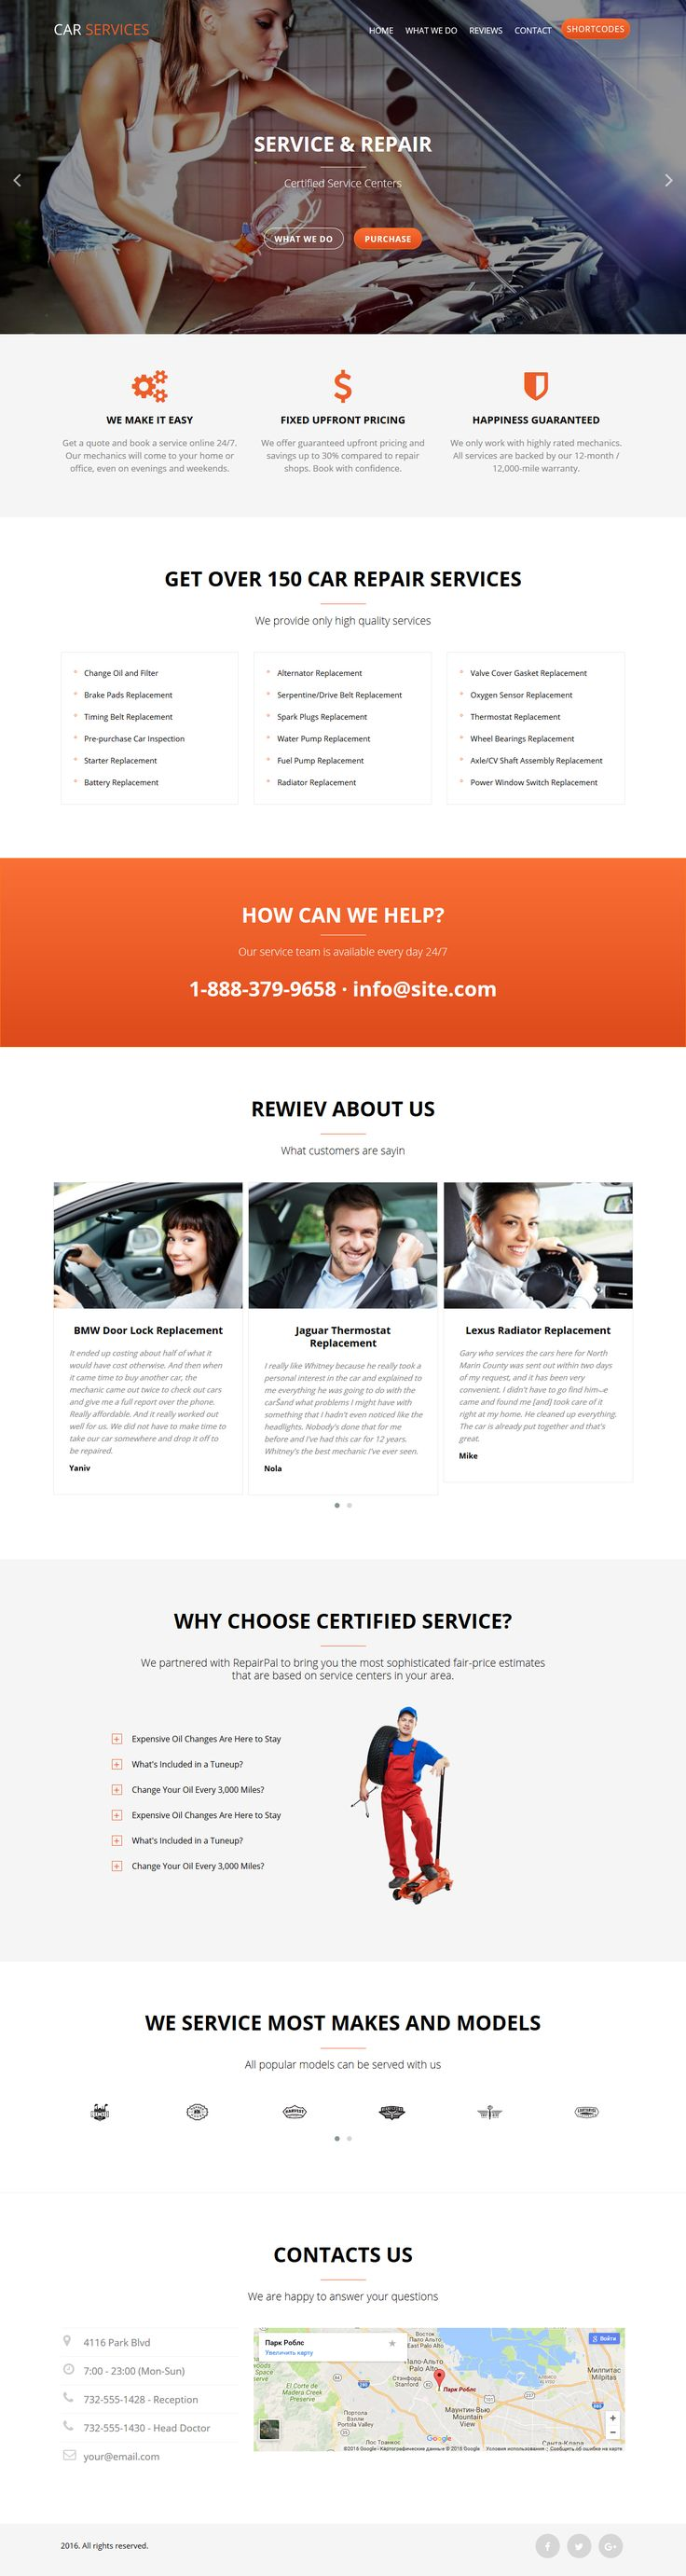 wedding invitation template themeforest%0A Avados  Car Repair Services Landing Pages with Page Builder